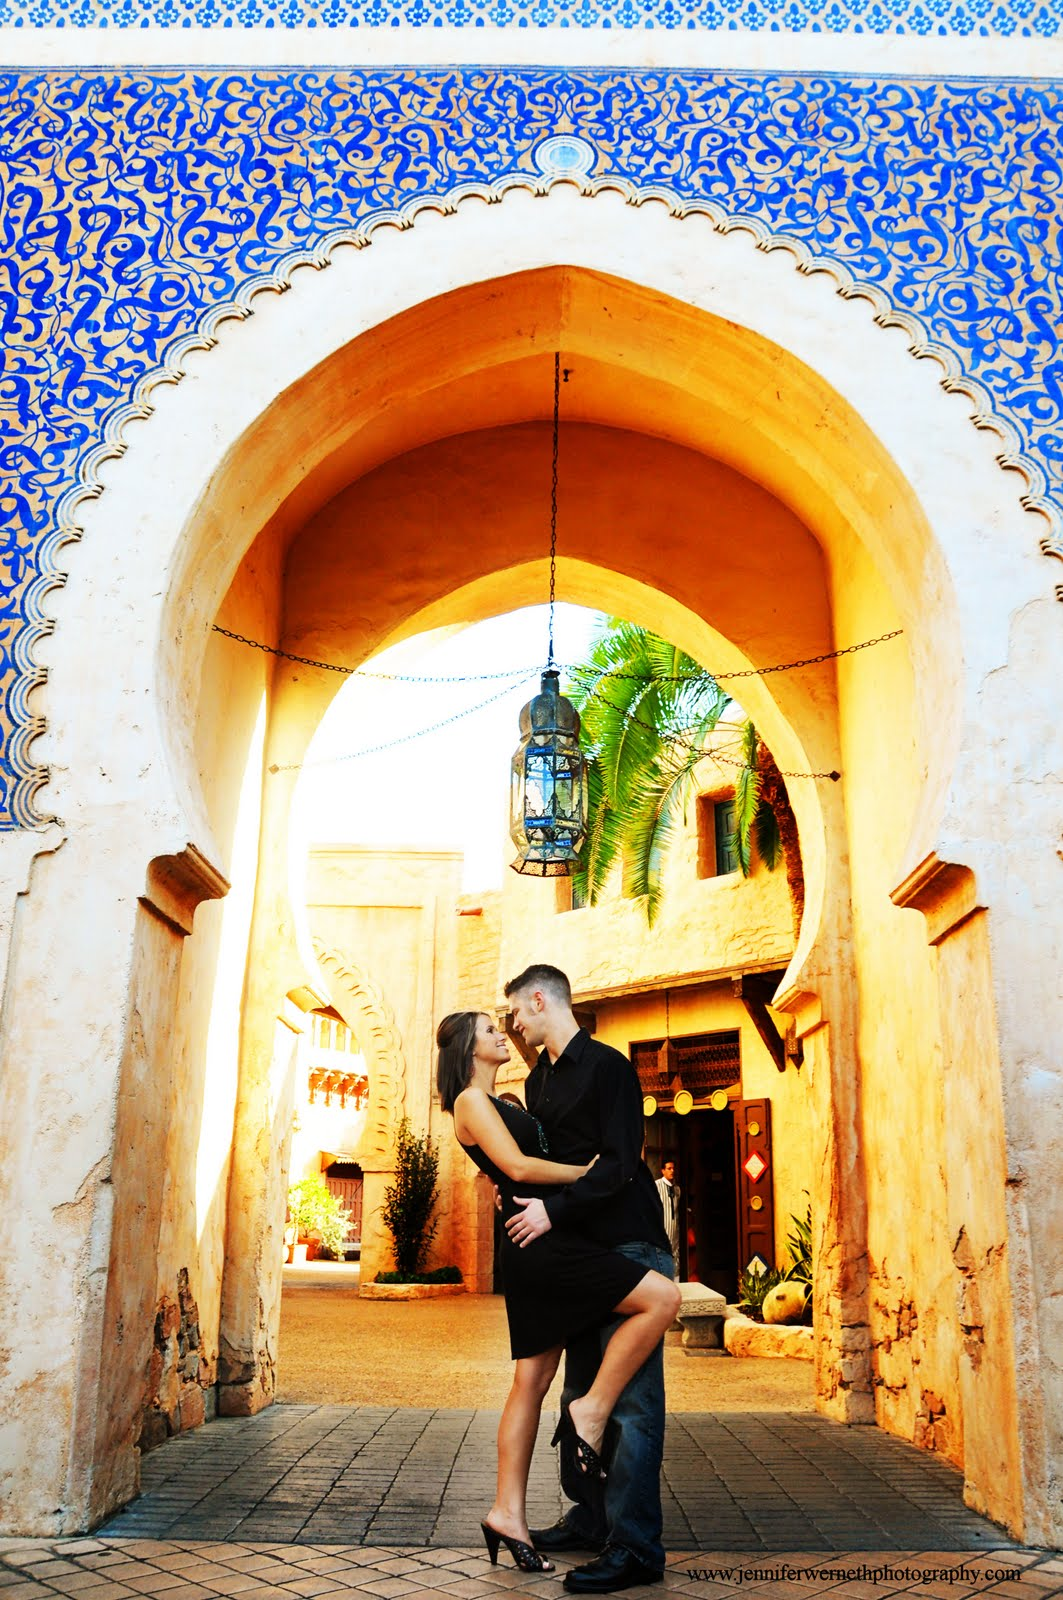 Engagement Photography at Disney's Epcot and Boardwalk